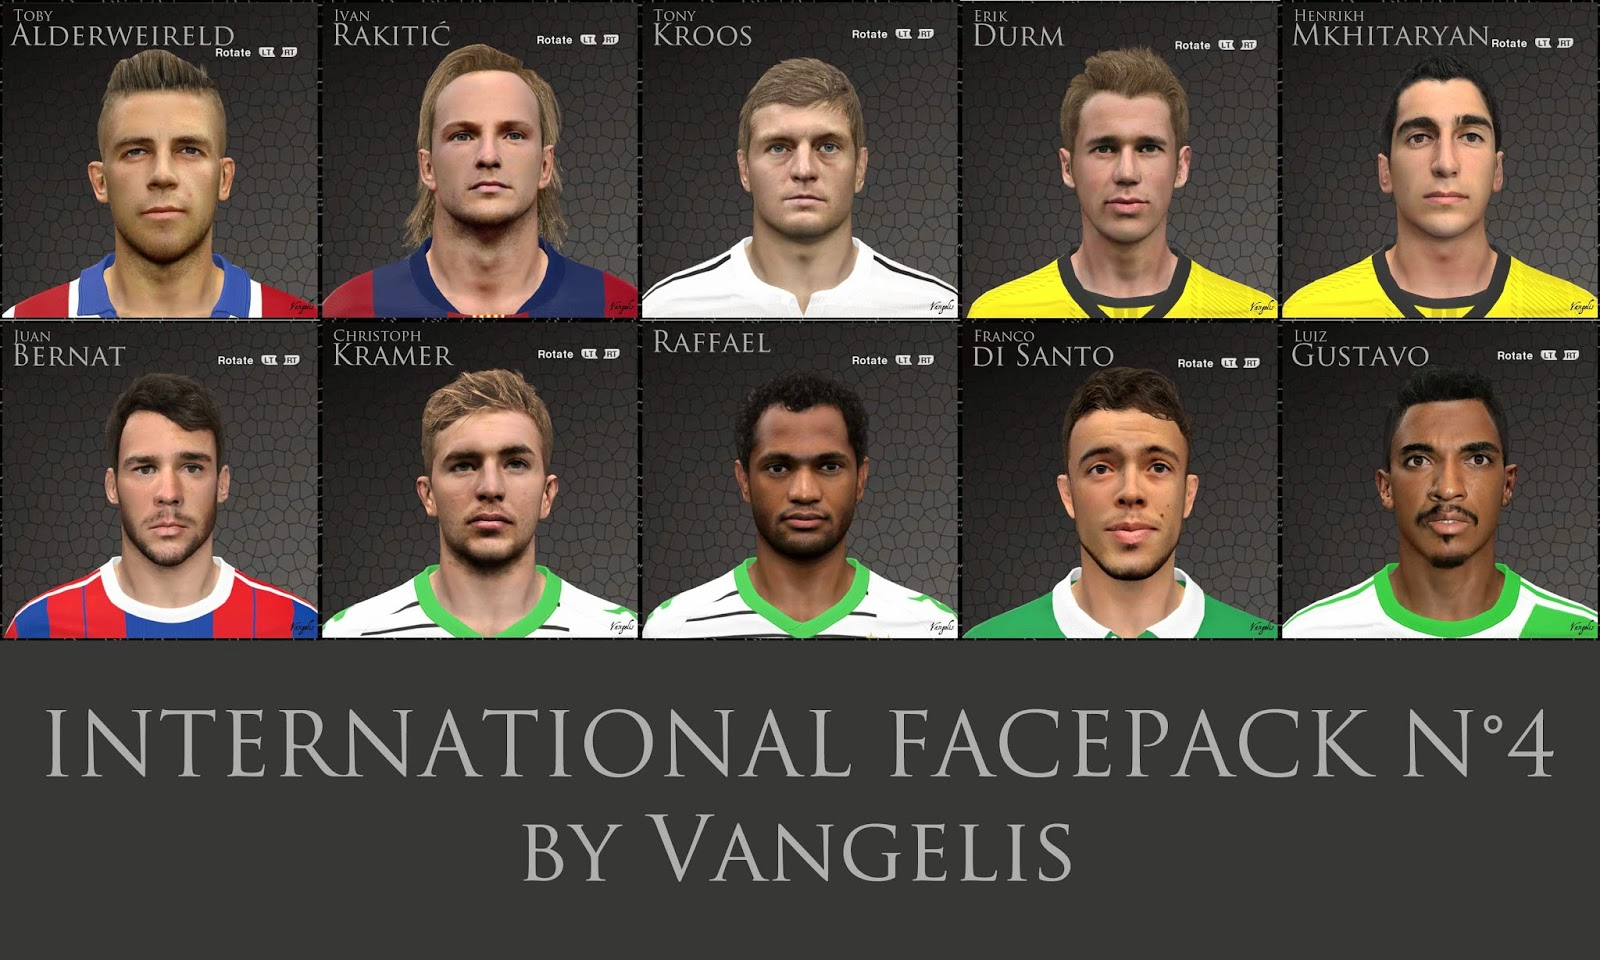 PES 2014 INTERNATIONAL FACEPACK N°4 by Vangelis